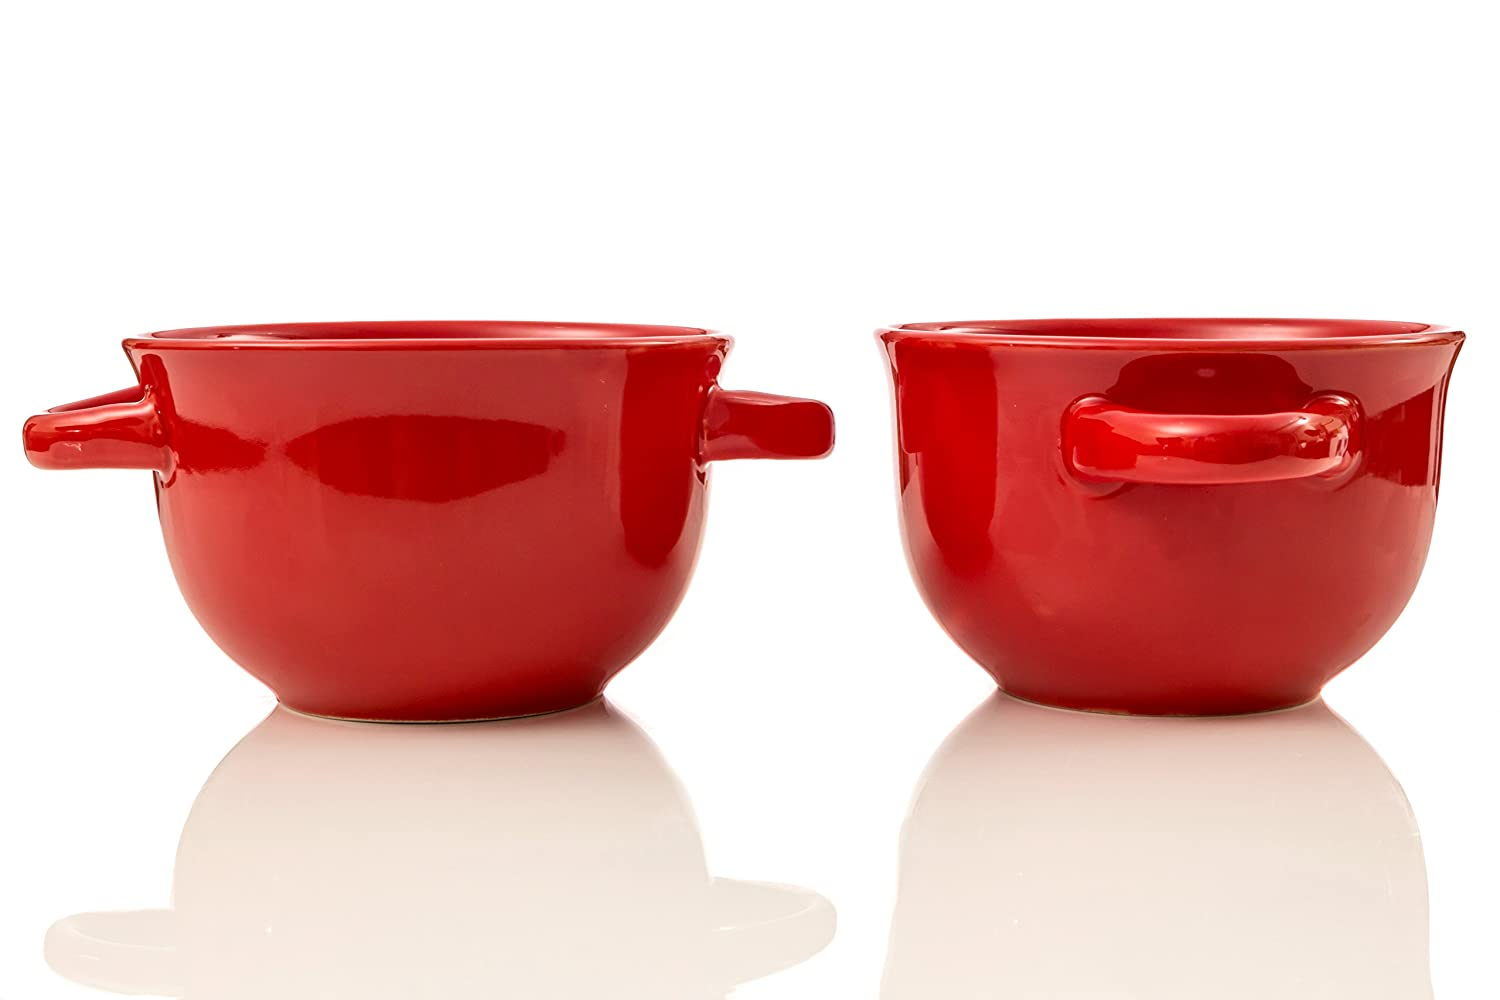 Crockpot 22-ounce Double Handle Soup Bowls, Set of 2 Red